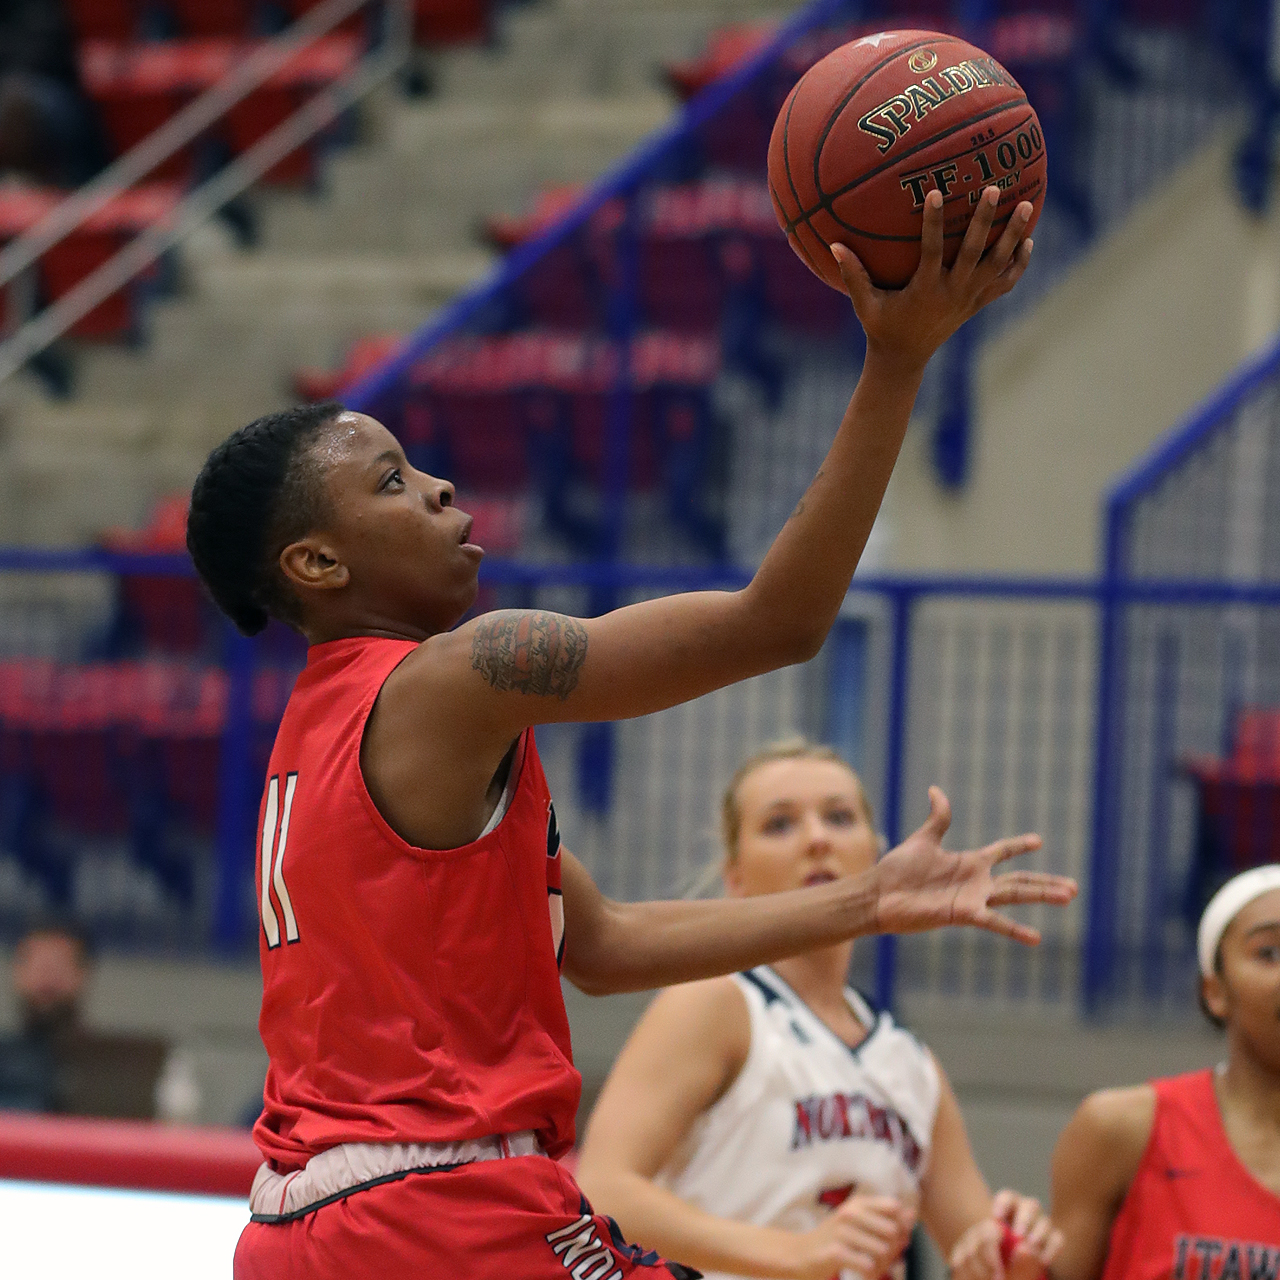 Lady Indians roll Northwest in North Division opener